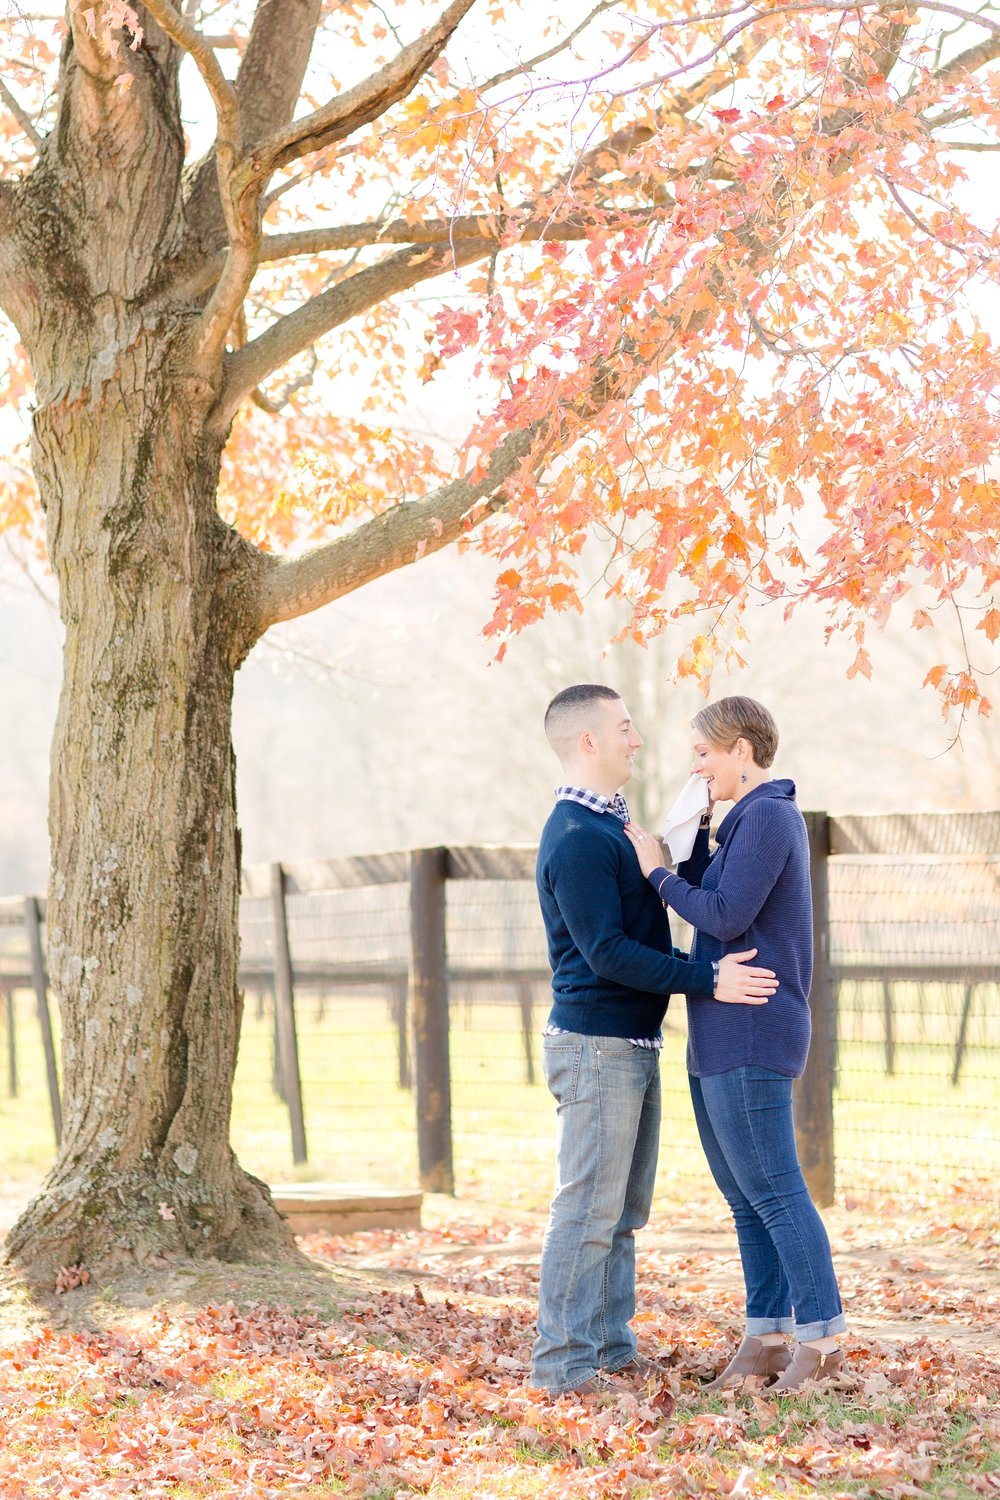 Emily & Joe Engaged-98_anna grace photography baltimore maryland wedding and engagement photographer helmore farm photo.jpg